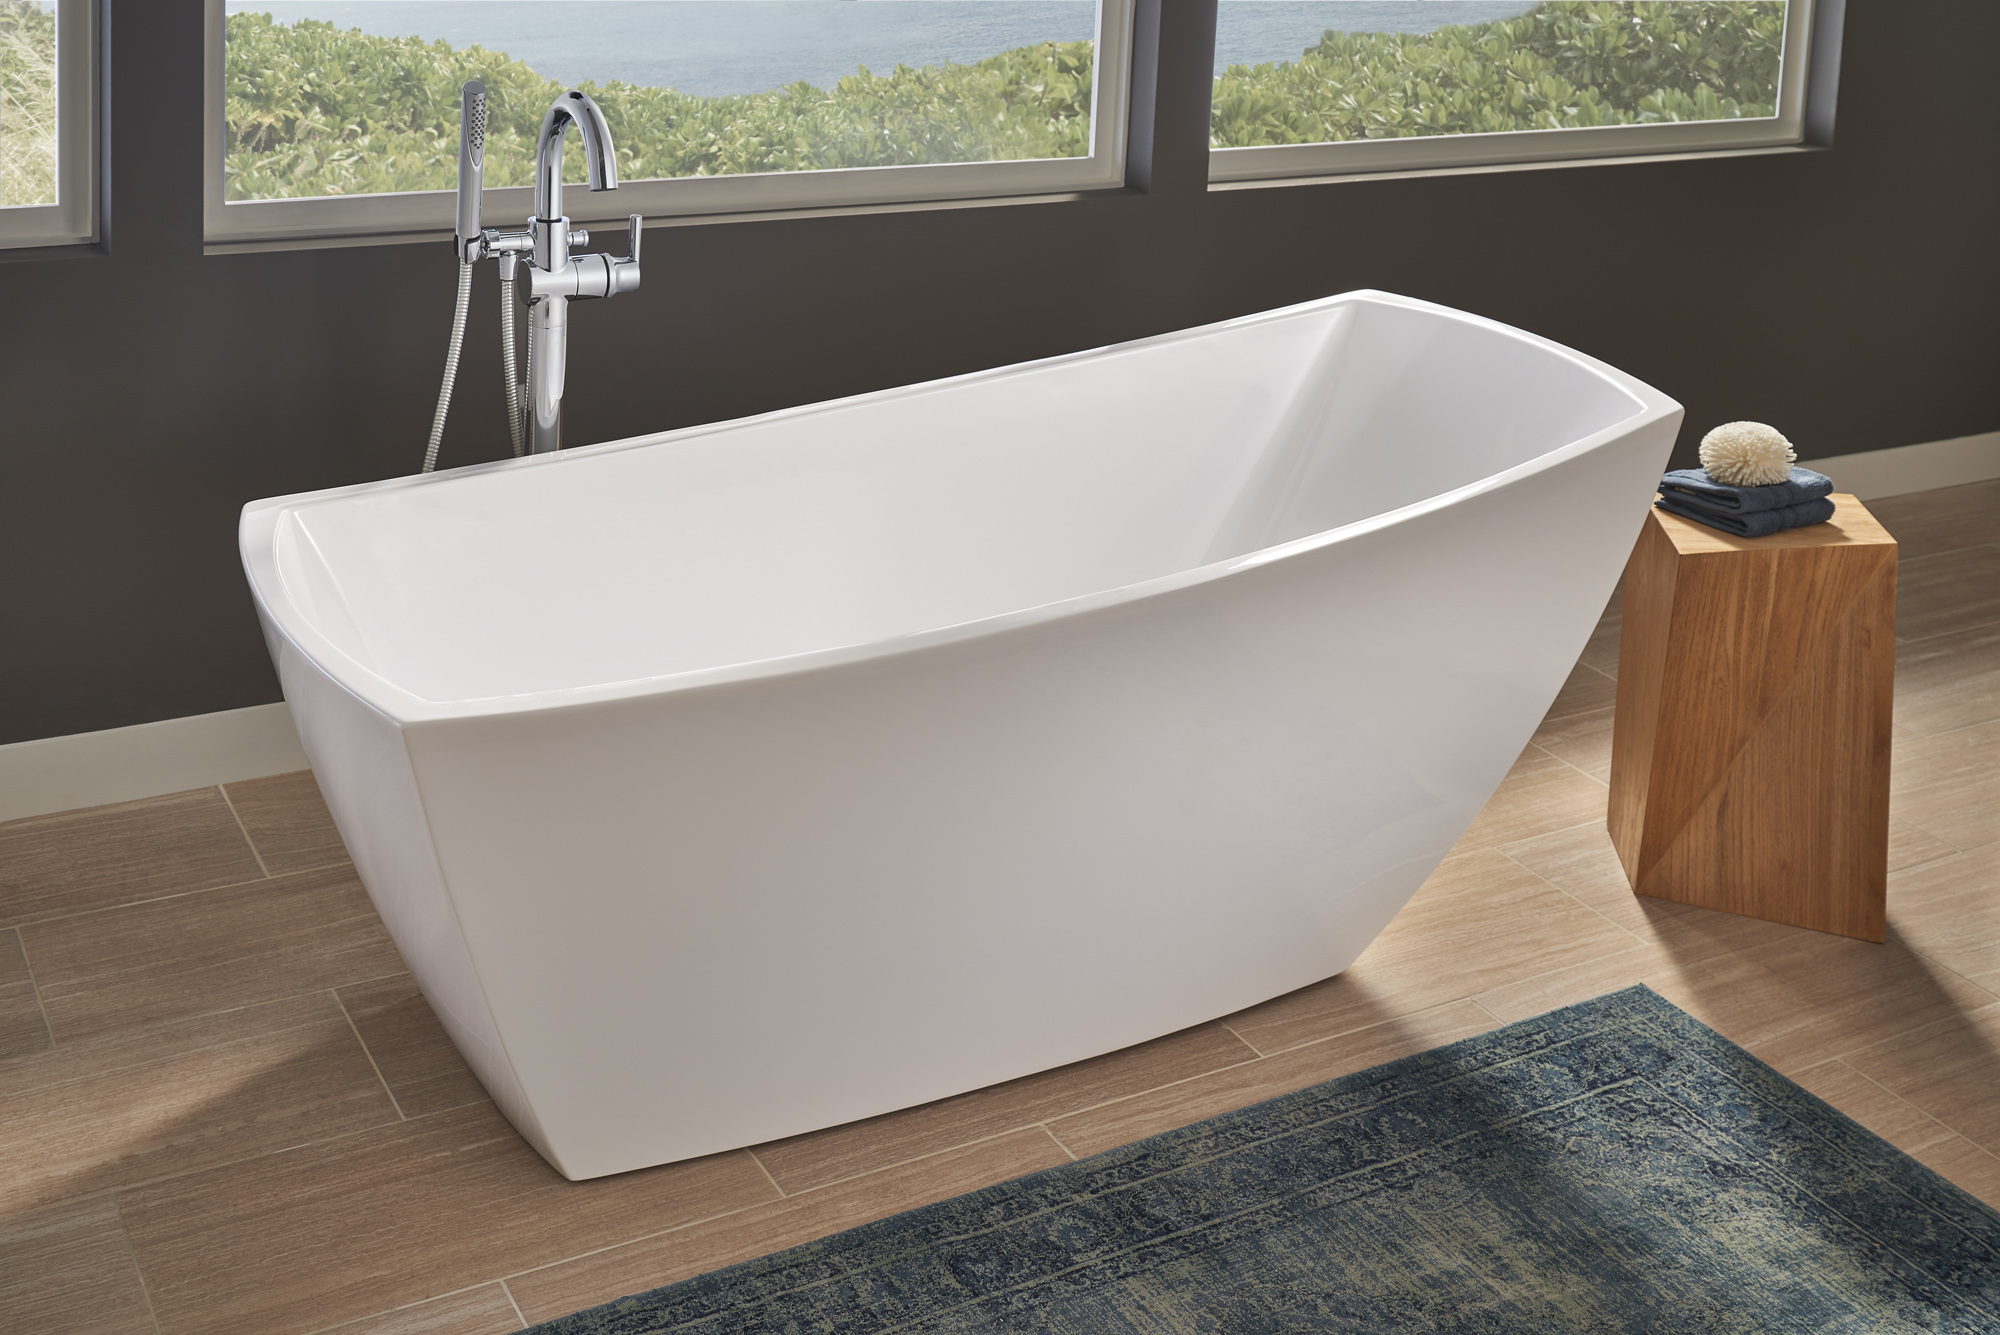 Lc Spa Jacuzzi Stella Soaker Tub Makes A Freestanding Statement